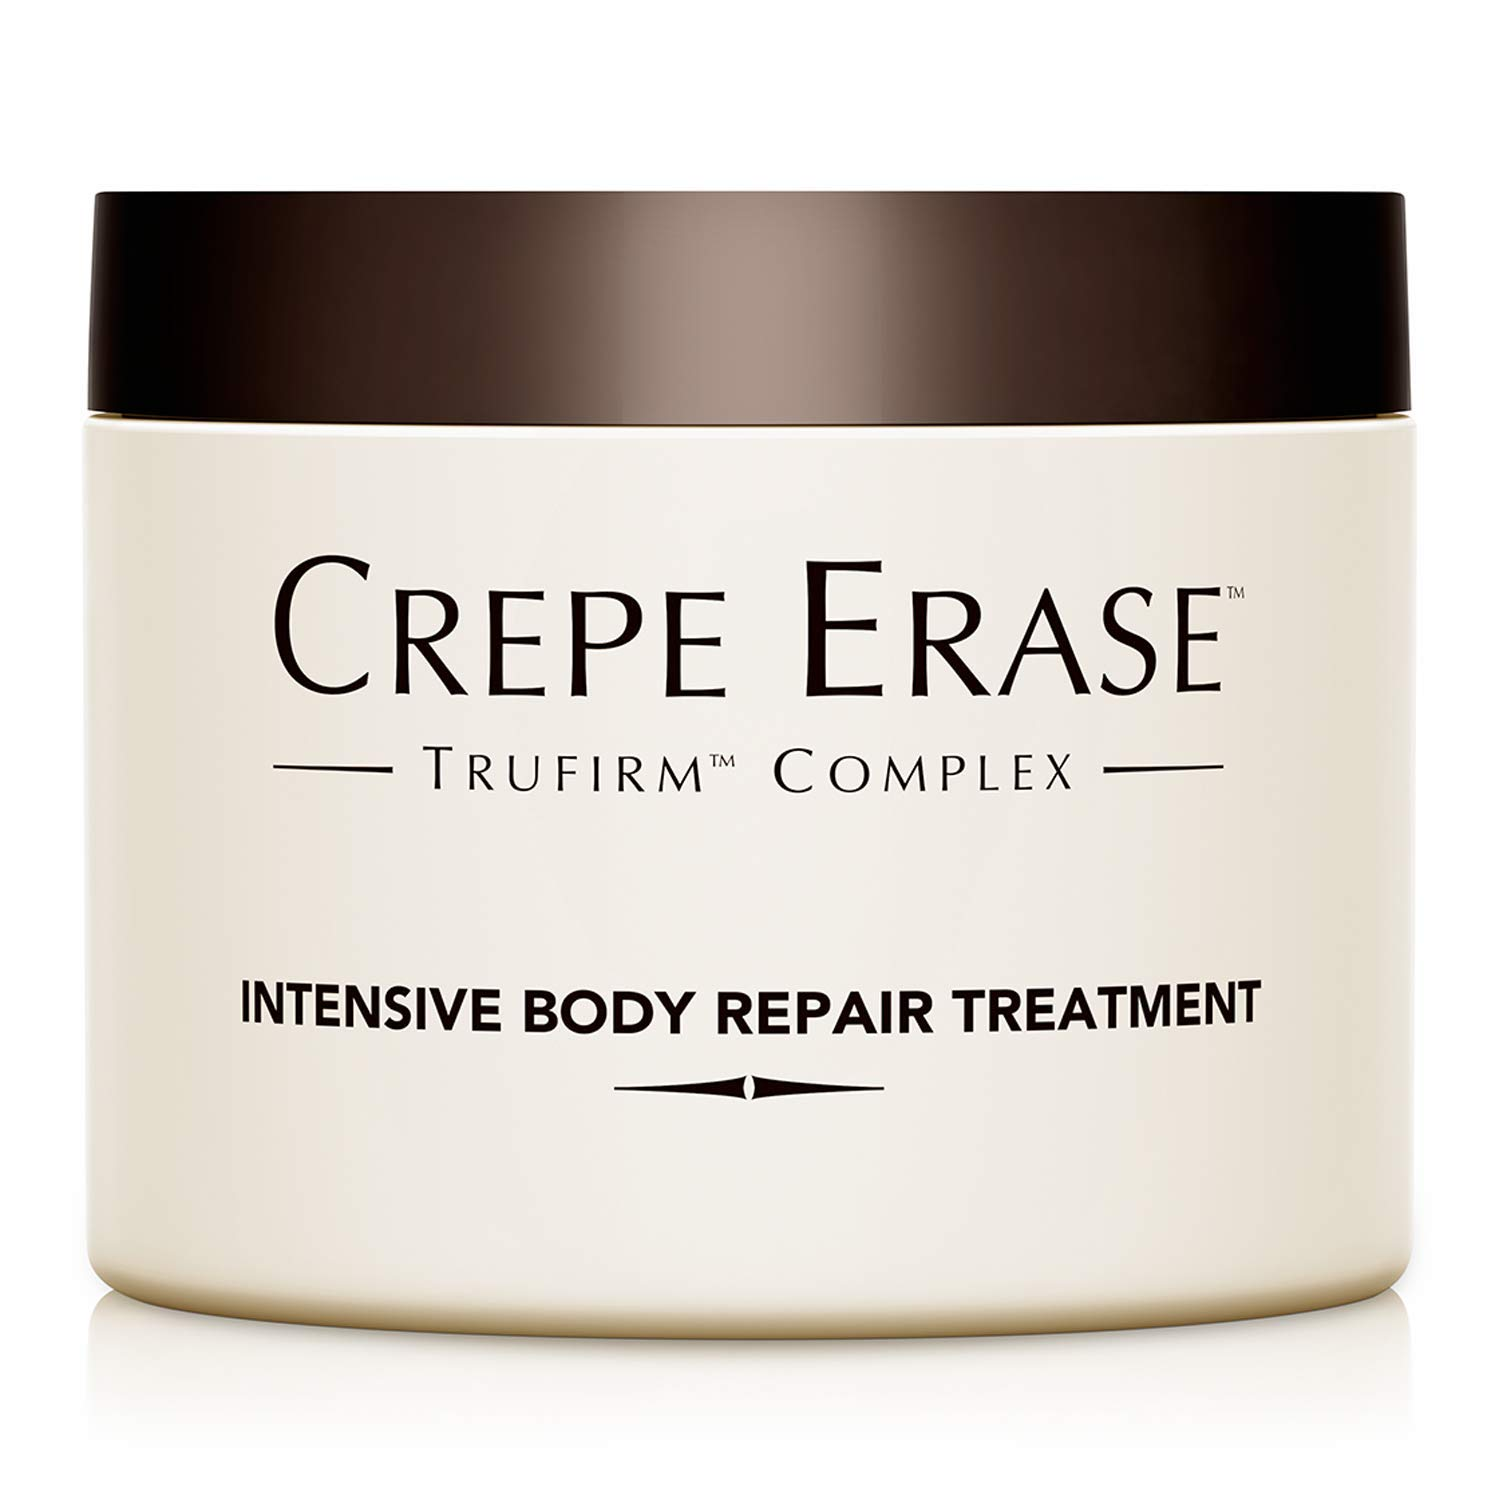 Crepe Erase - Anti Aging Hand Repair Treatment - Trufirm Complex -  Original by Crepe Erase